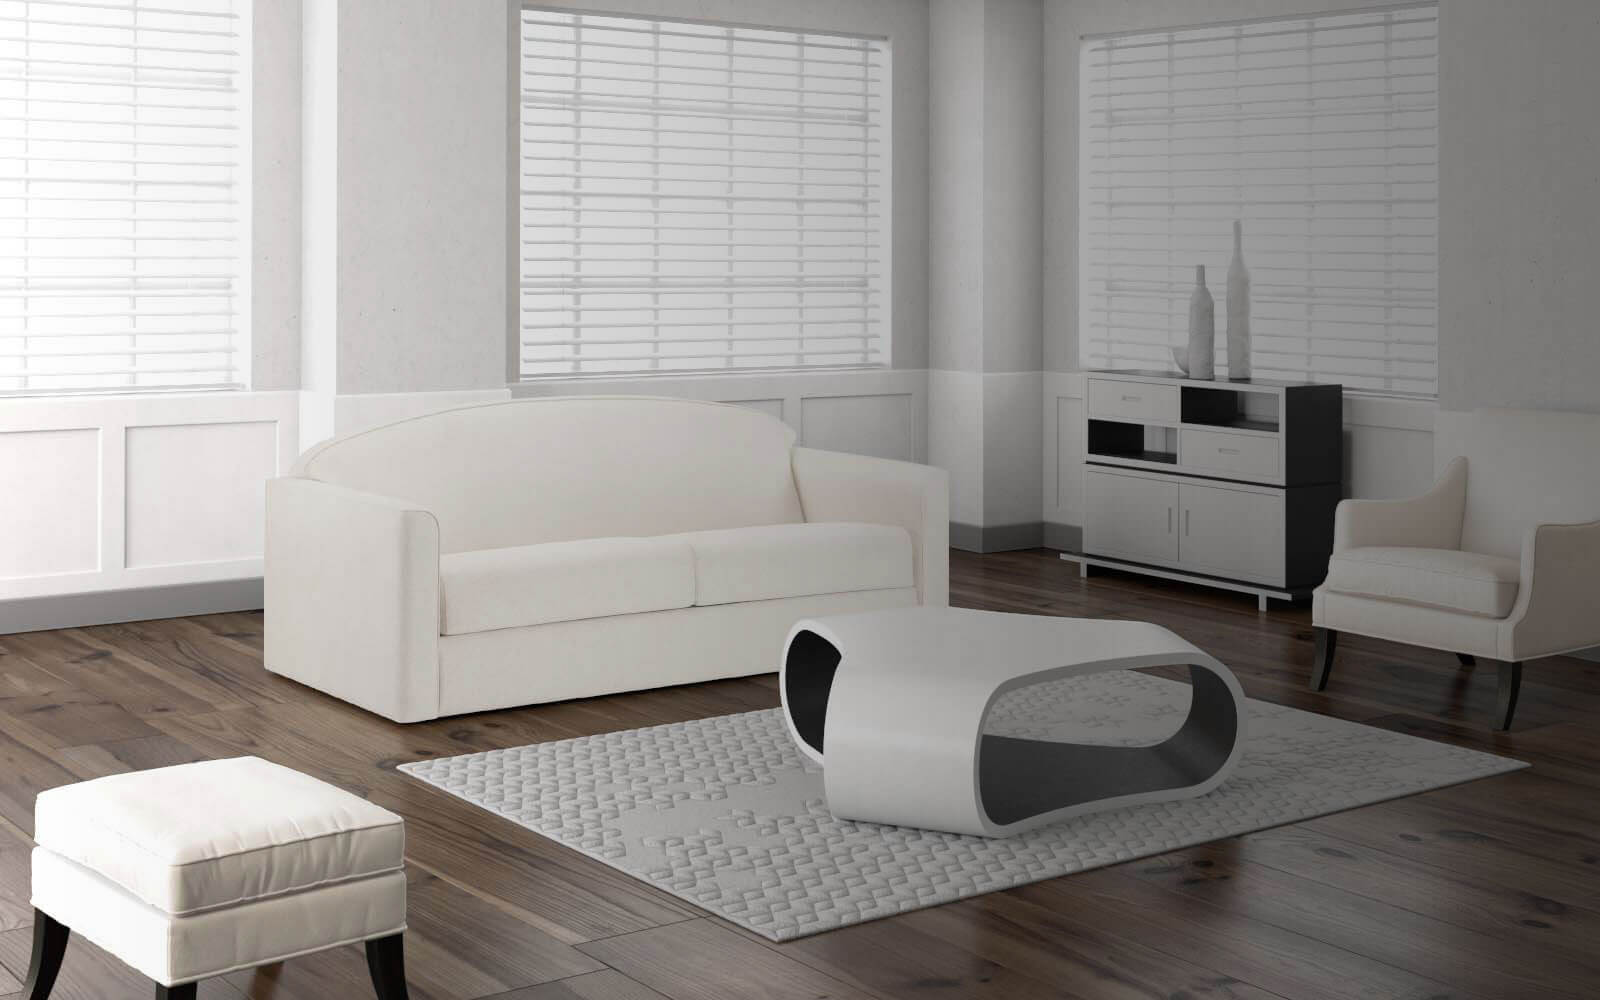 Sofa Beds for tight spaces